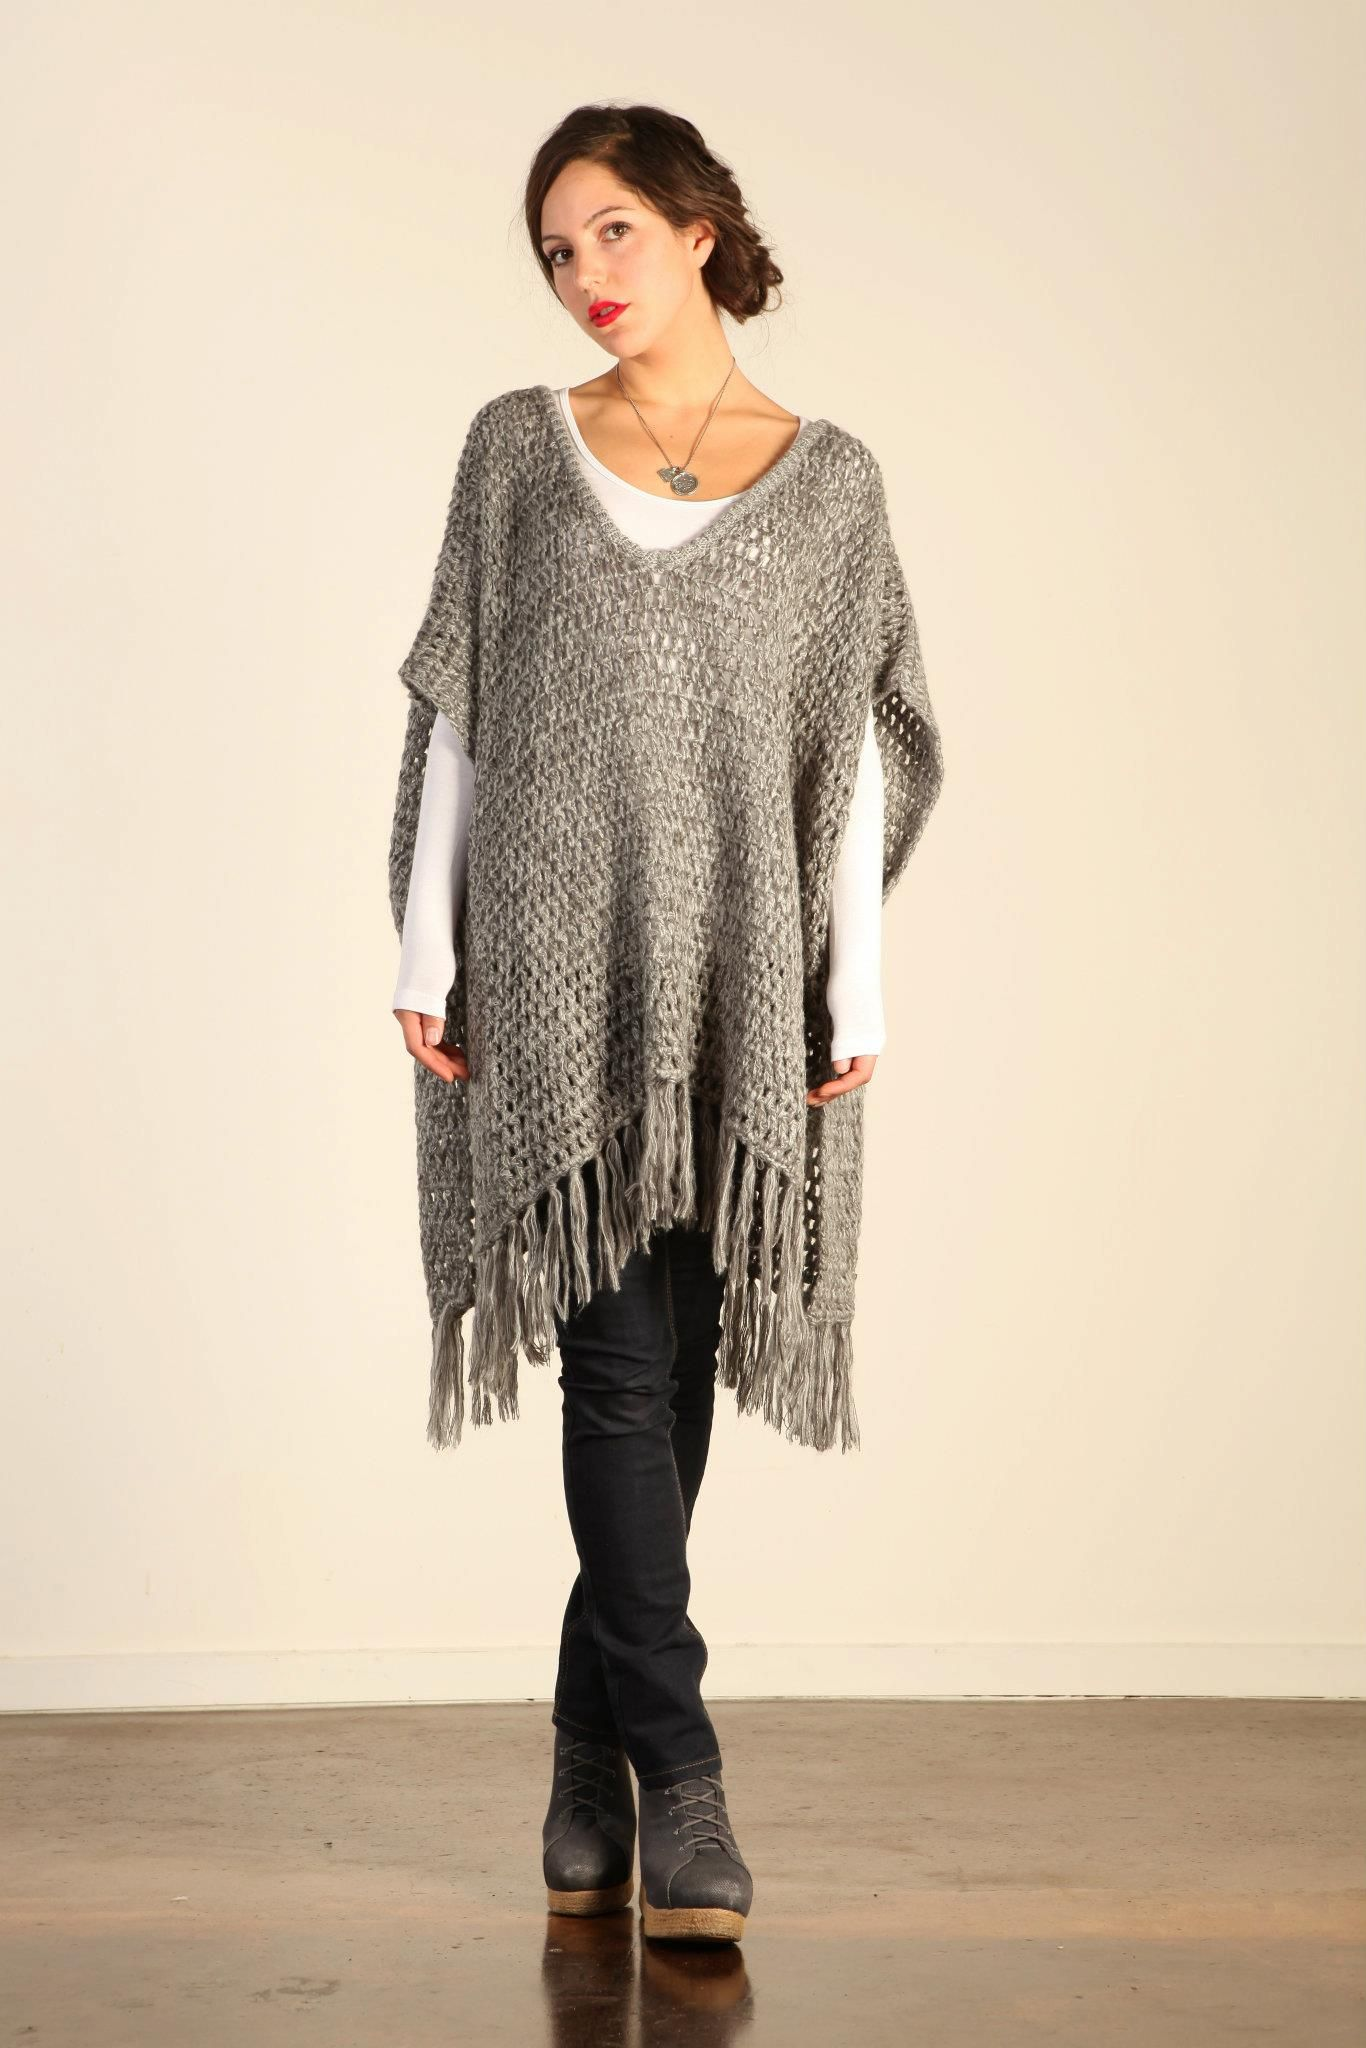 Sadie Grey Knit Poncho. For item not pattern. Make a crochet one ...